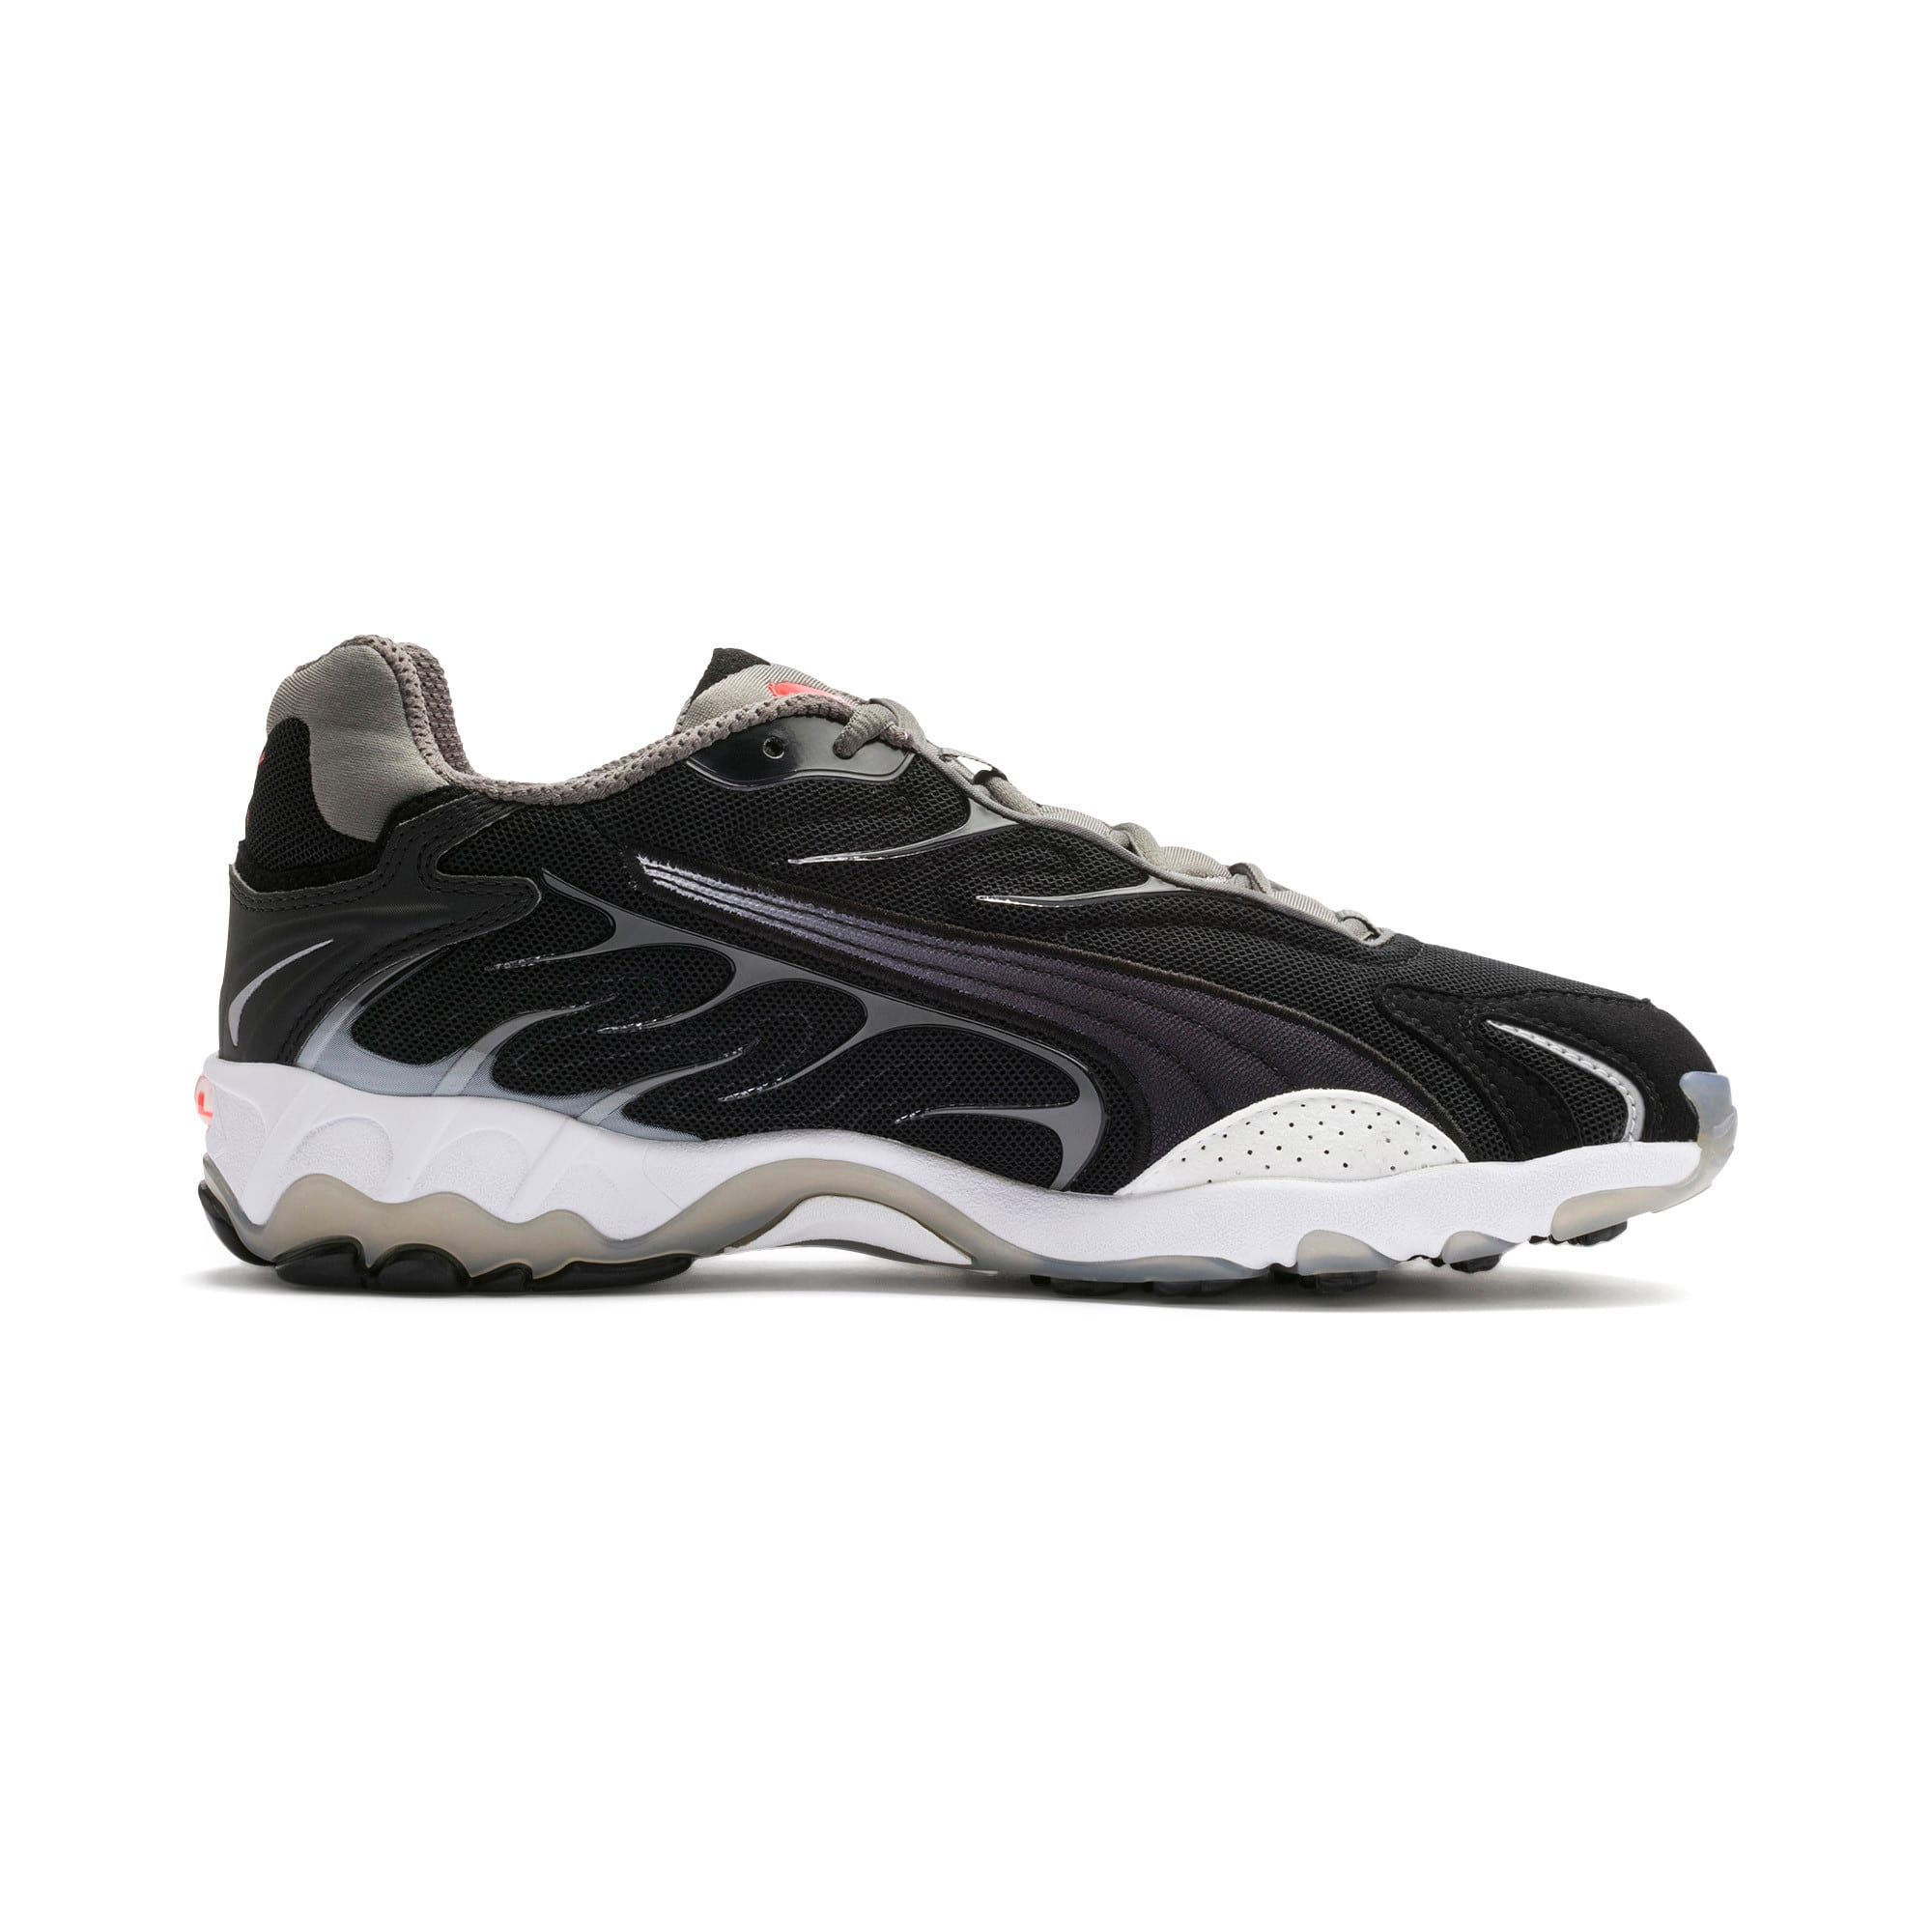 Thumbnail 6 of Inhale Flares Trainers, Puma Black-Puma White, medium